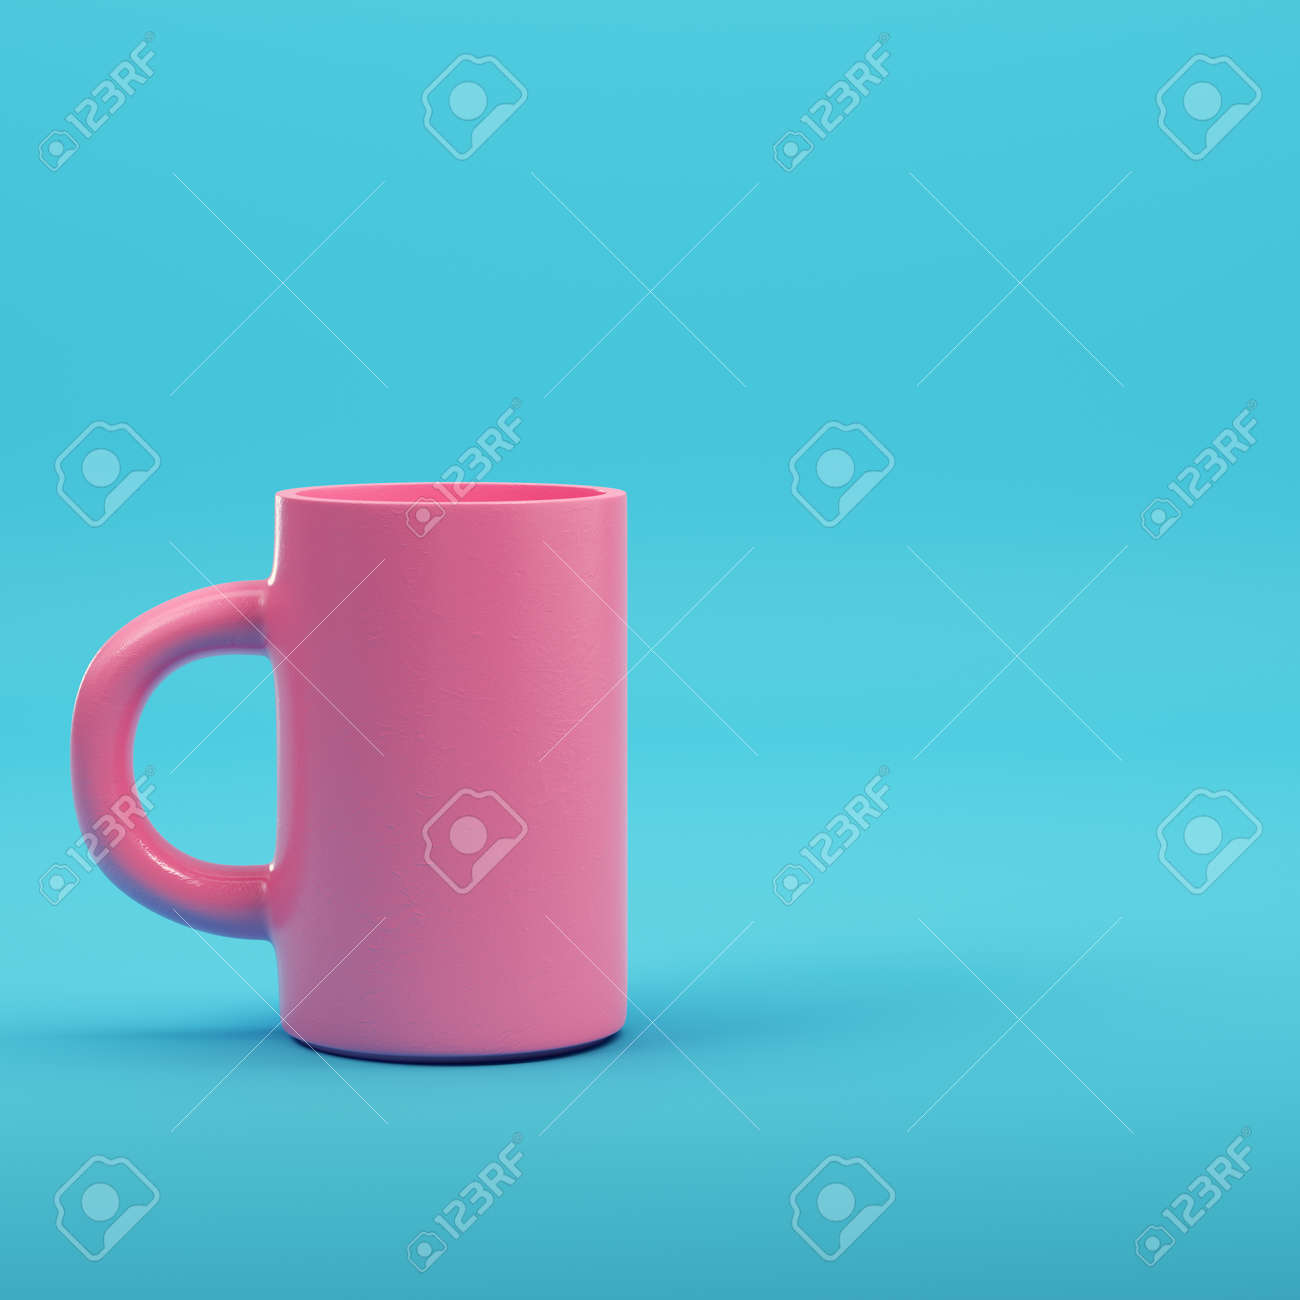 Pink coffee mug on bright blue background in pastel colors. Minimalism concept. 3d render - 172223019